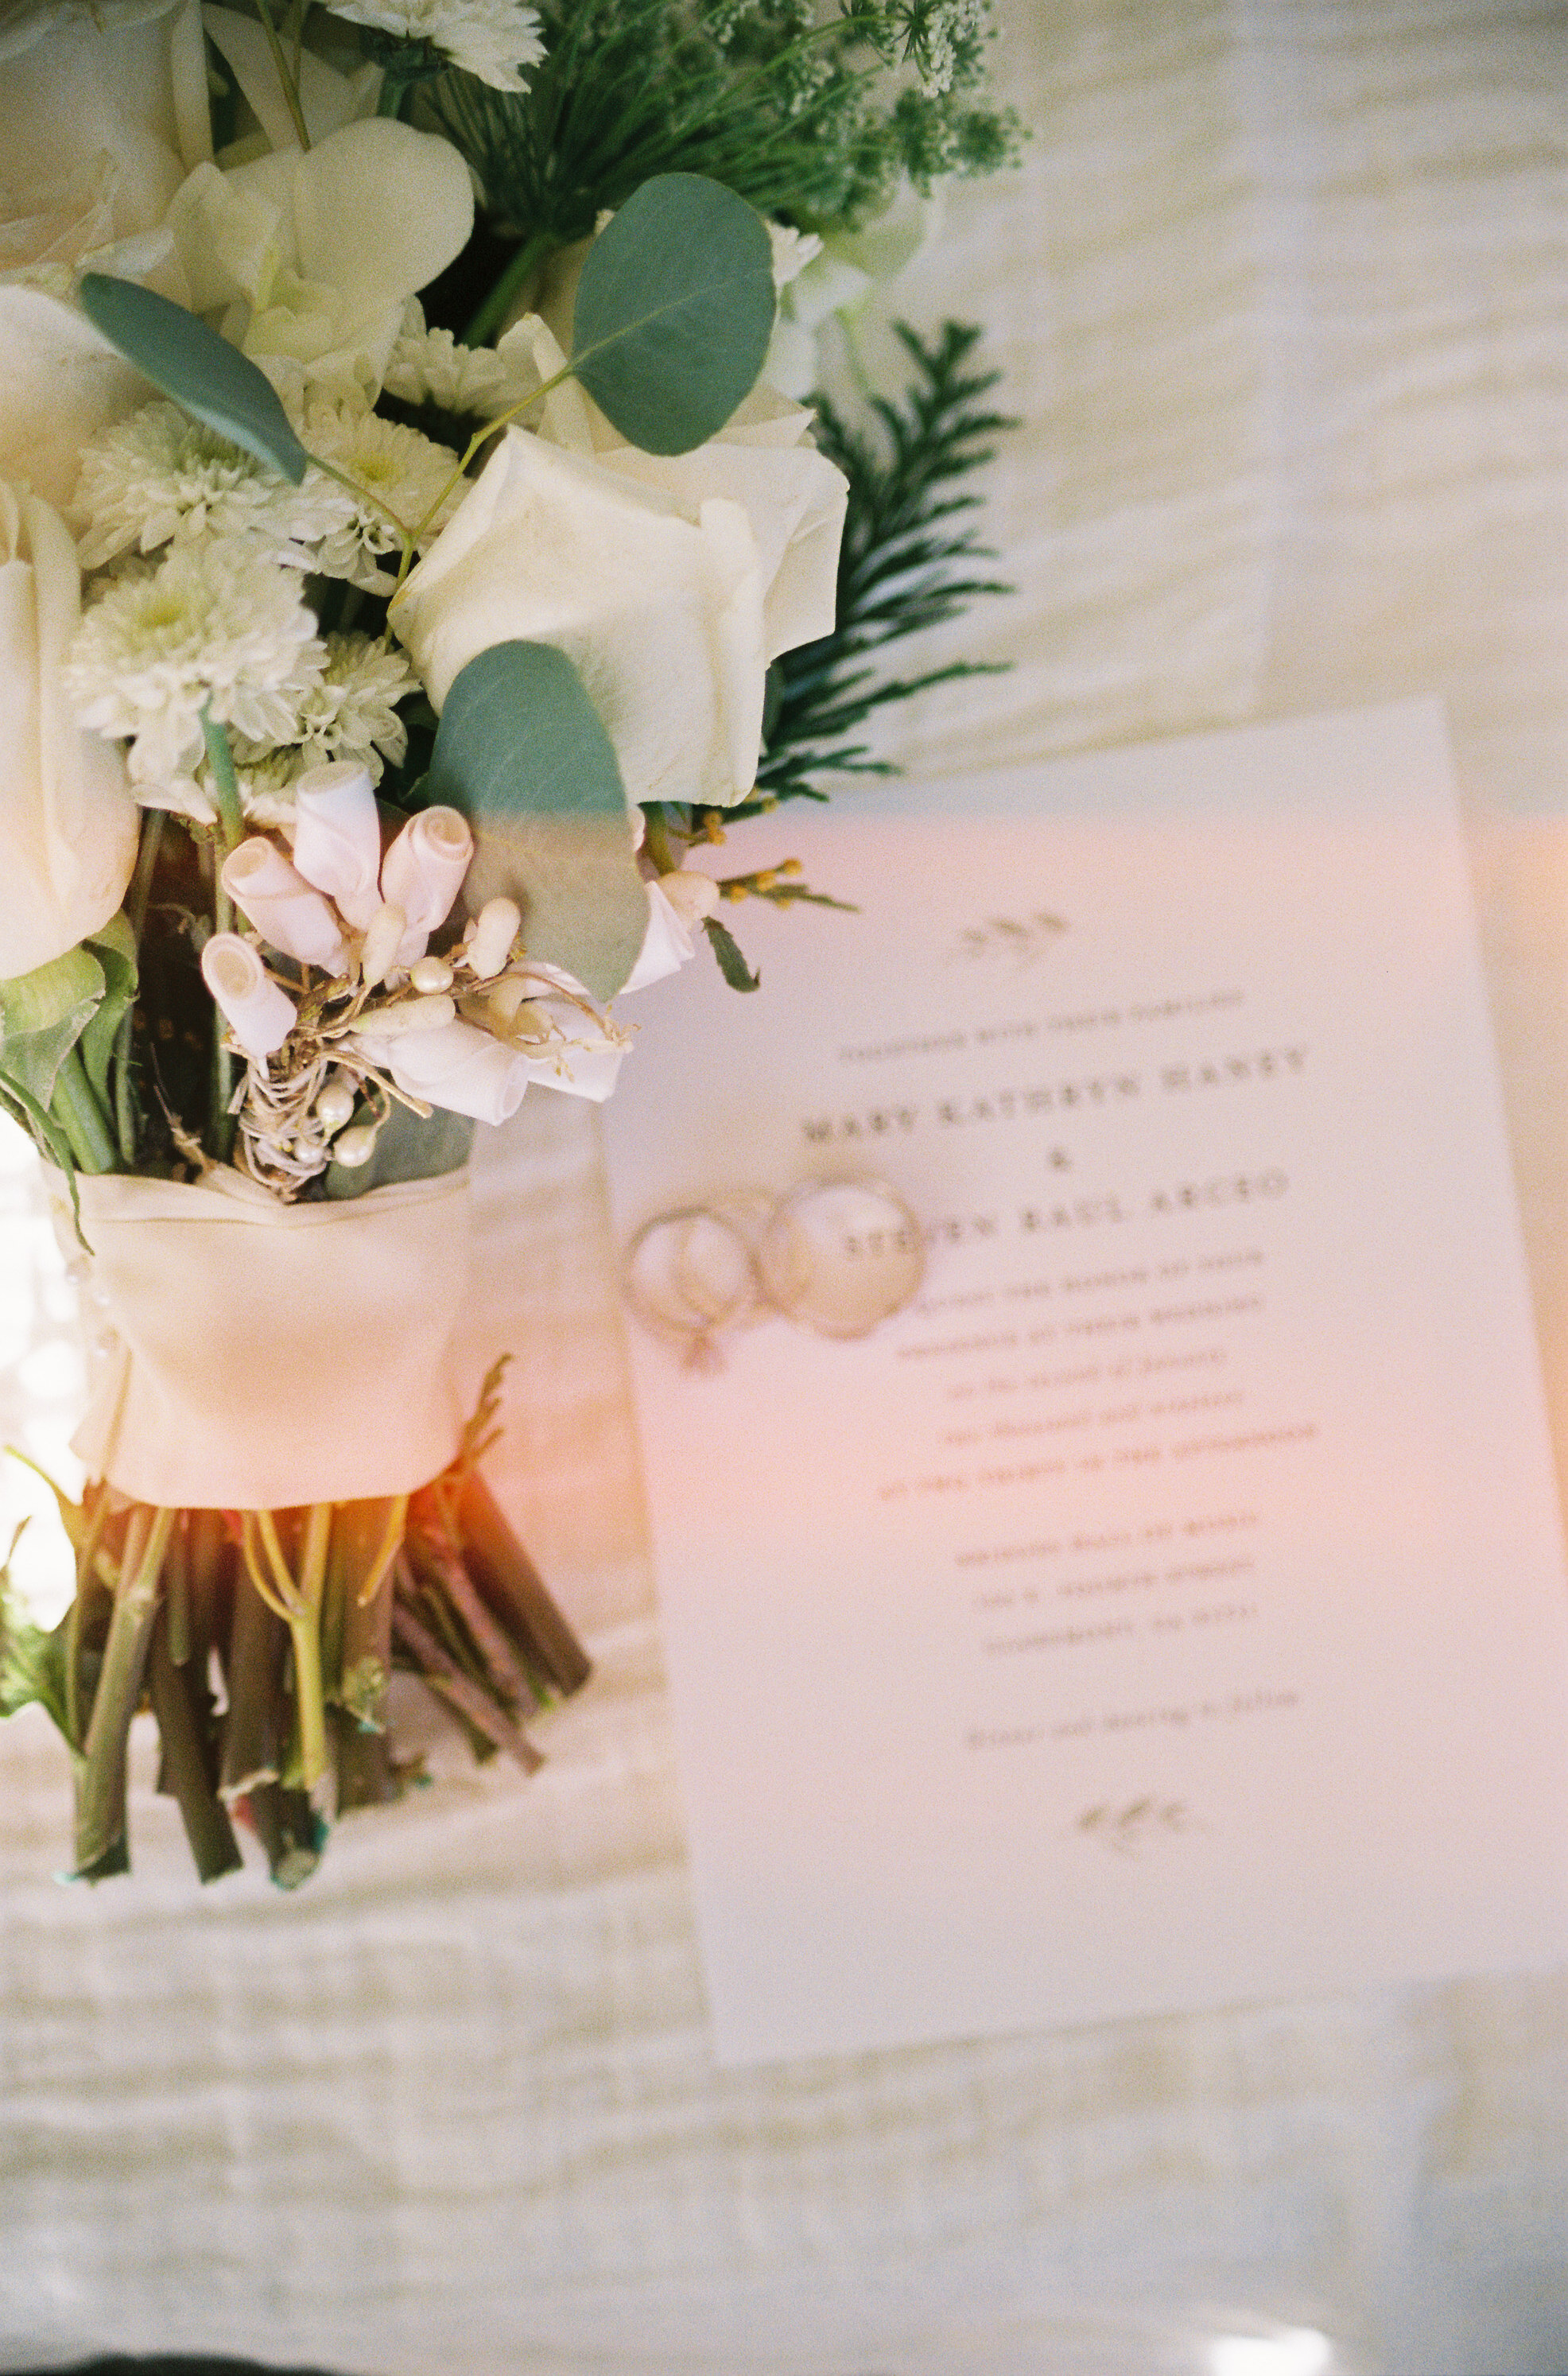 Elegant Wedding Invitation Suite | Southern California Romantic Wedding Near Their Home | Unions With Celia | Amy & Darren Photography |